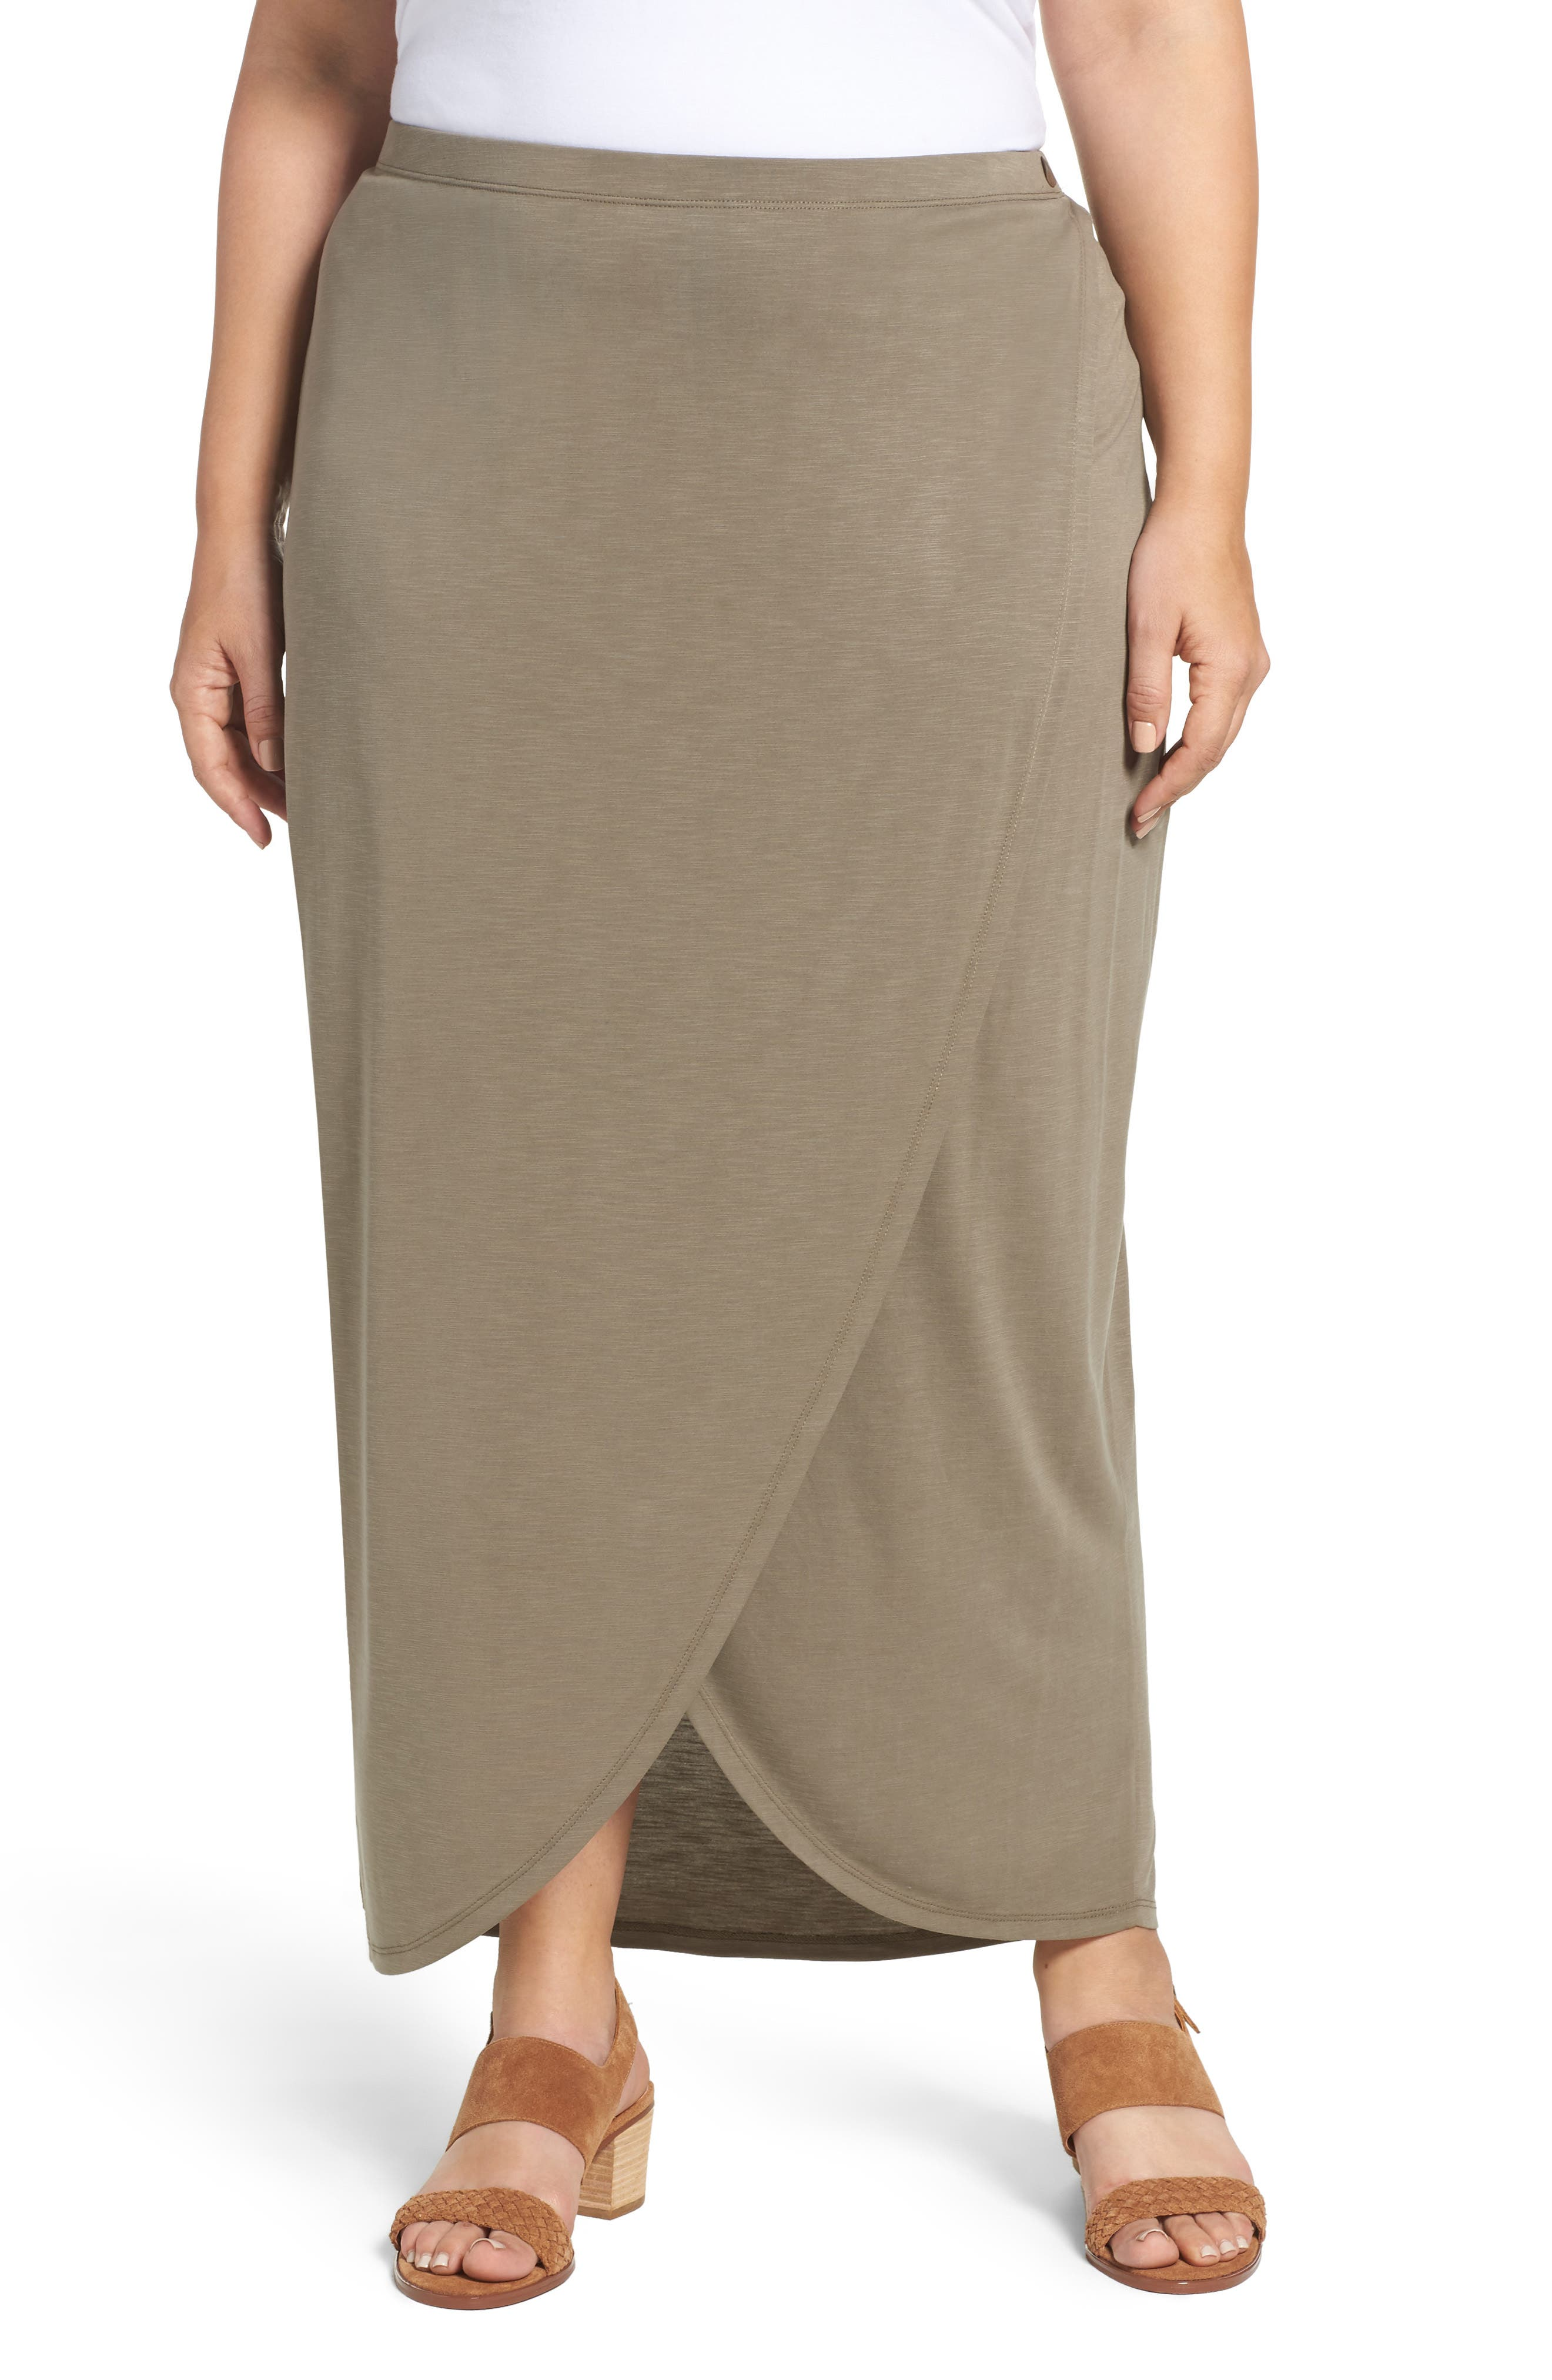 Alternate Image 1 Selected - NIC+ZOE Boardwalk Knit Wrap Maxi Skirt (Plus Size)